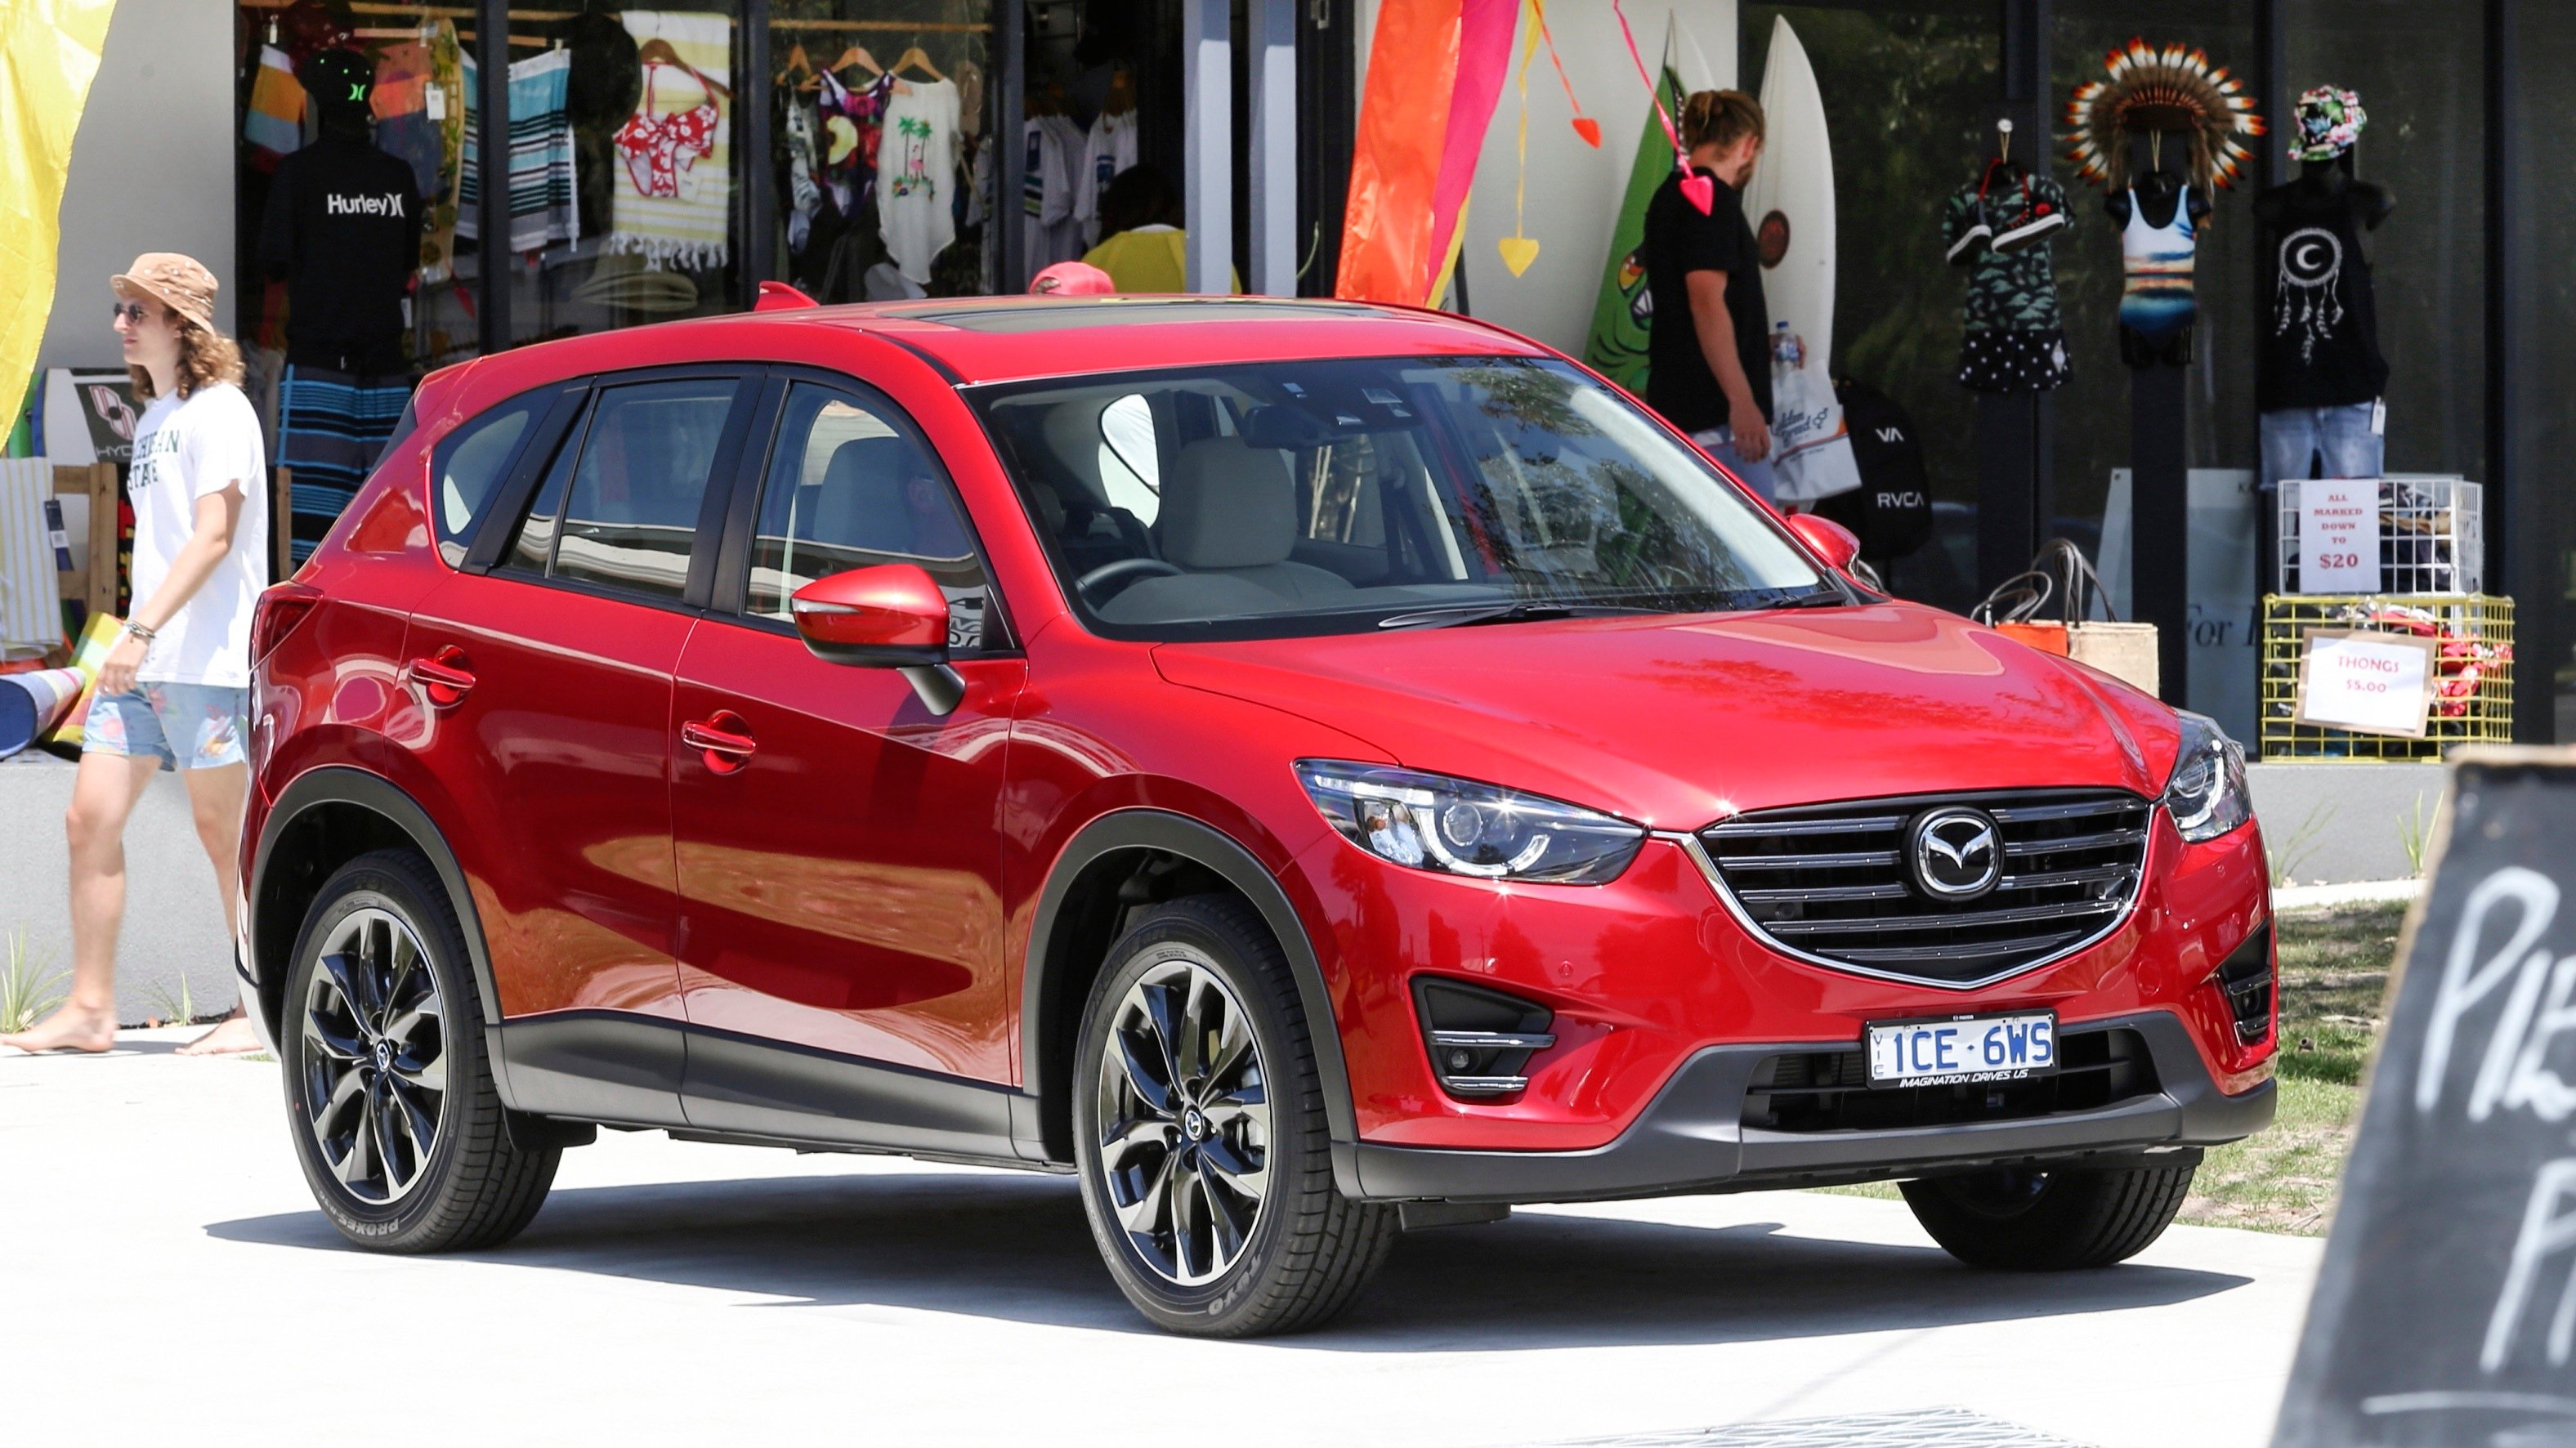 2015 mazda cx 5 pricing and specifications photos caradvice. Black Bedroom Furniture Sets. Home Design Ideas